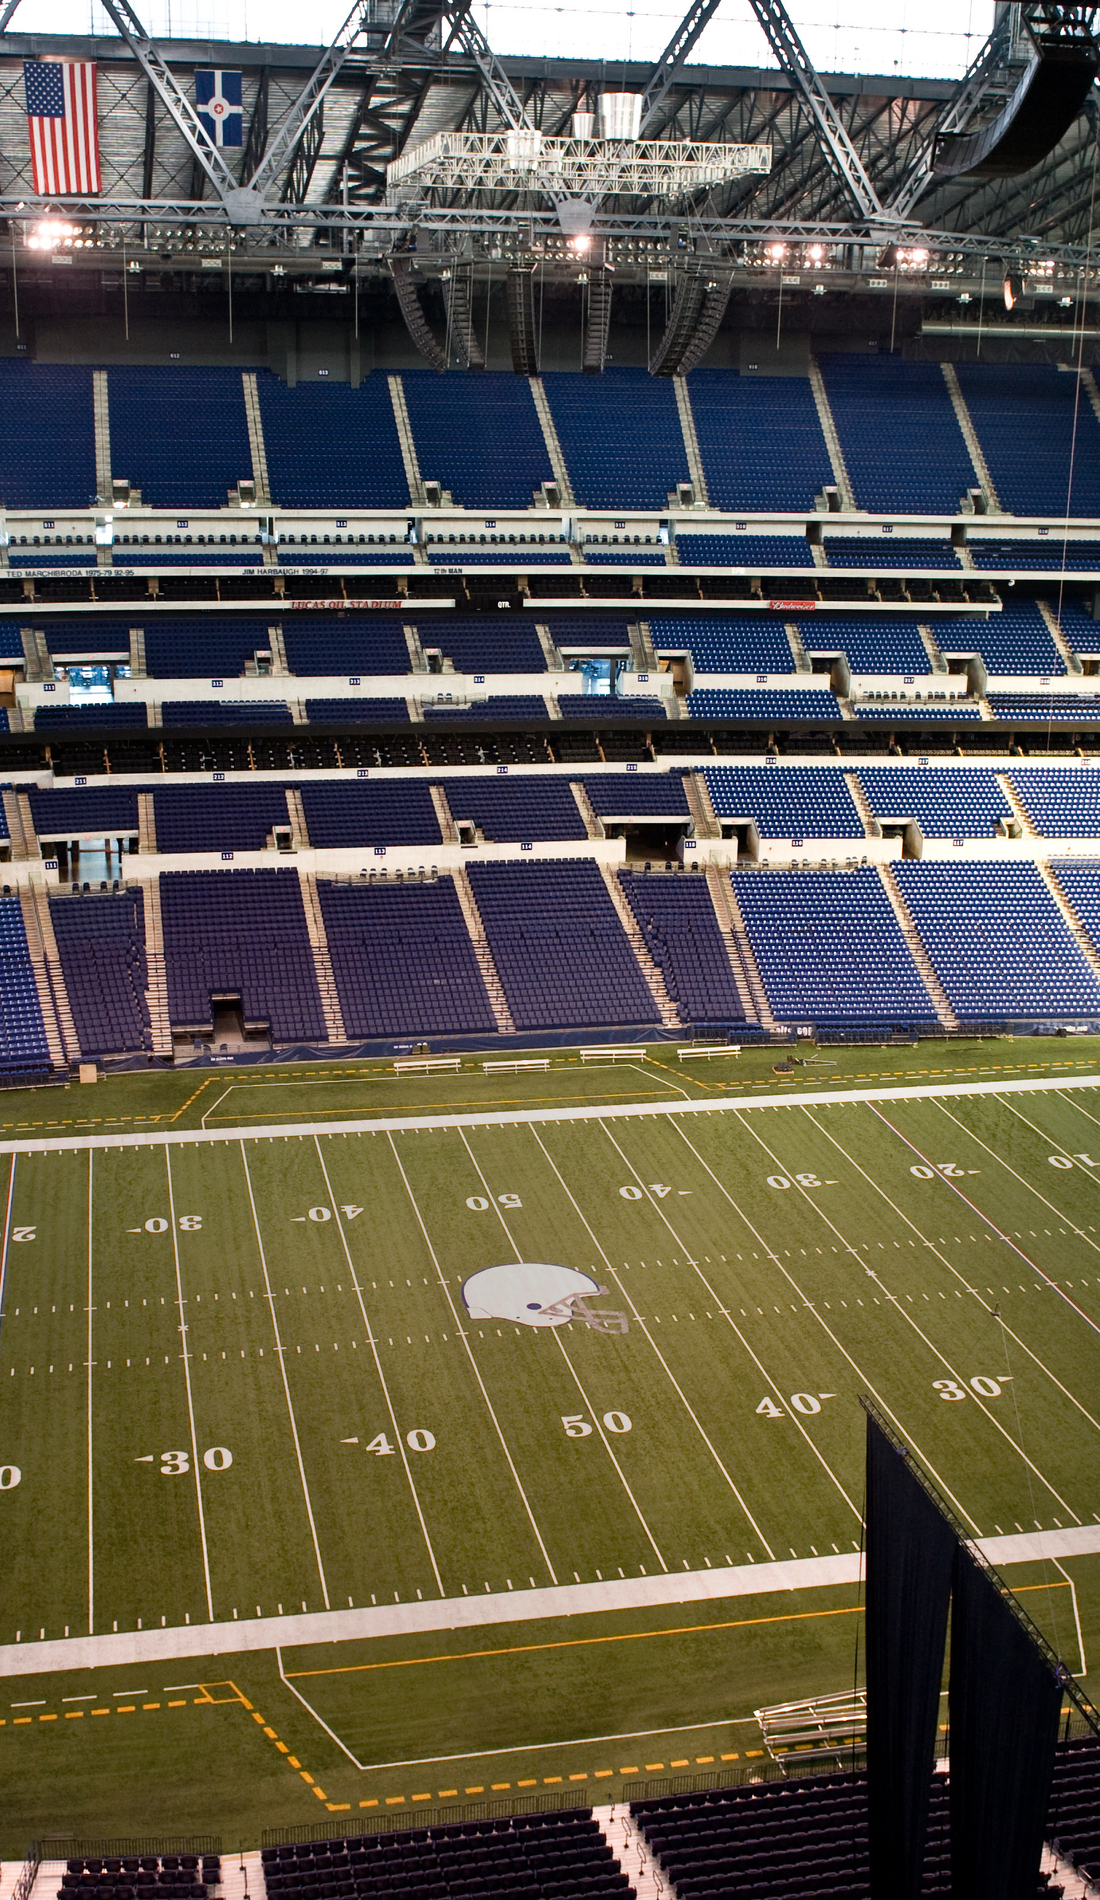 A Indianapolis Colts live event